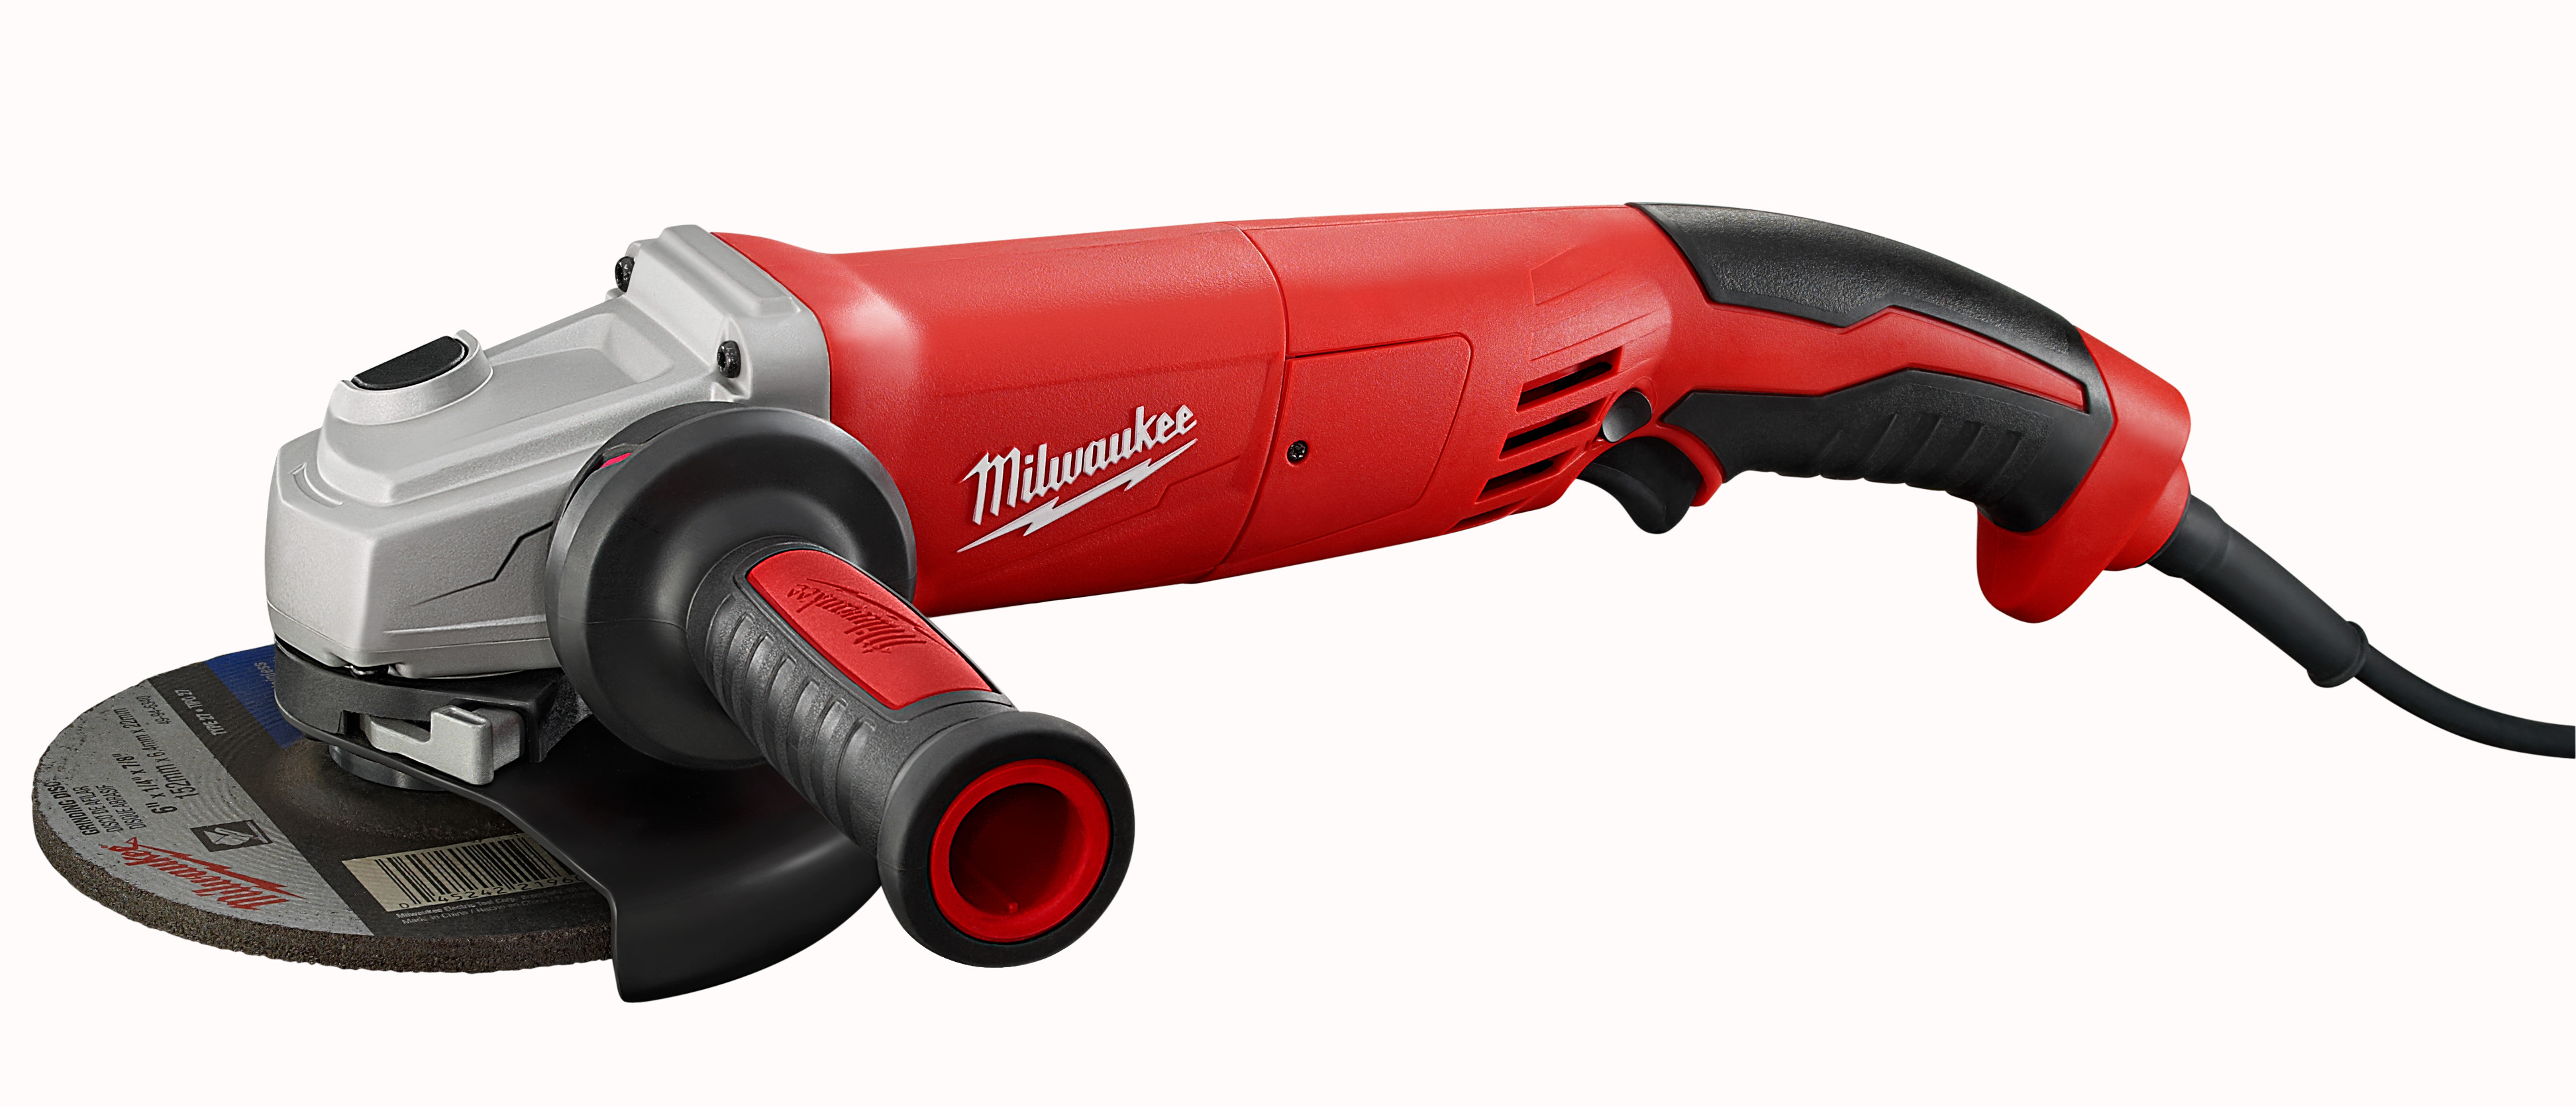 Milwaukee® 6124-31 Double Insulated Small Angle Grinder, 5 in Dia Wheel, 5/8-11 Arbor/Shank, 120 VAC, Black/Red